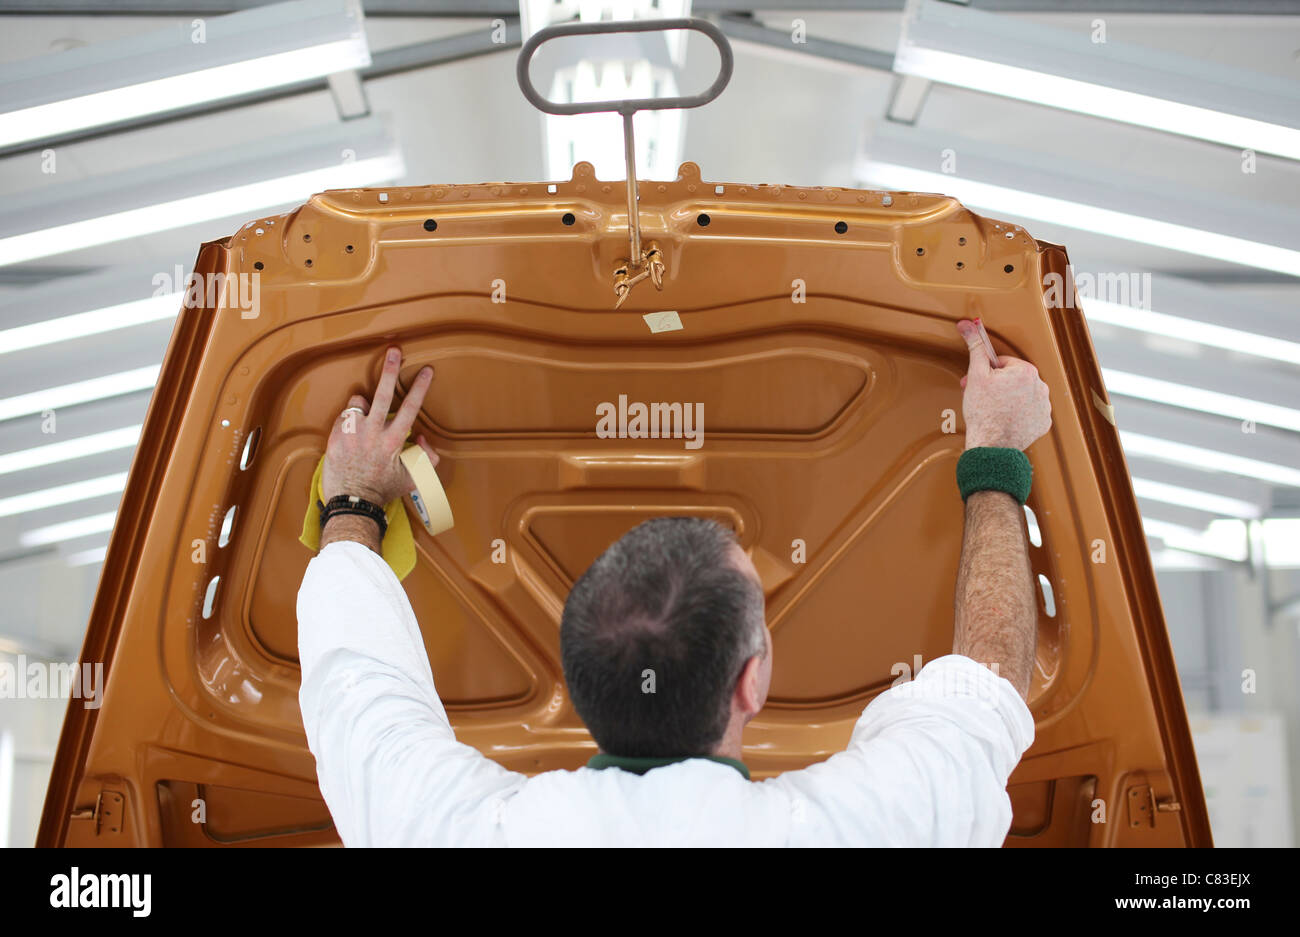 Painted Bentley motor car body shells are inspected at the company's factory in Crewe, U.K. - Stock Image